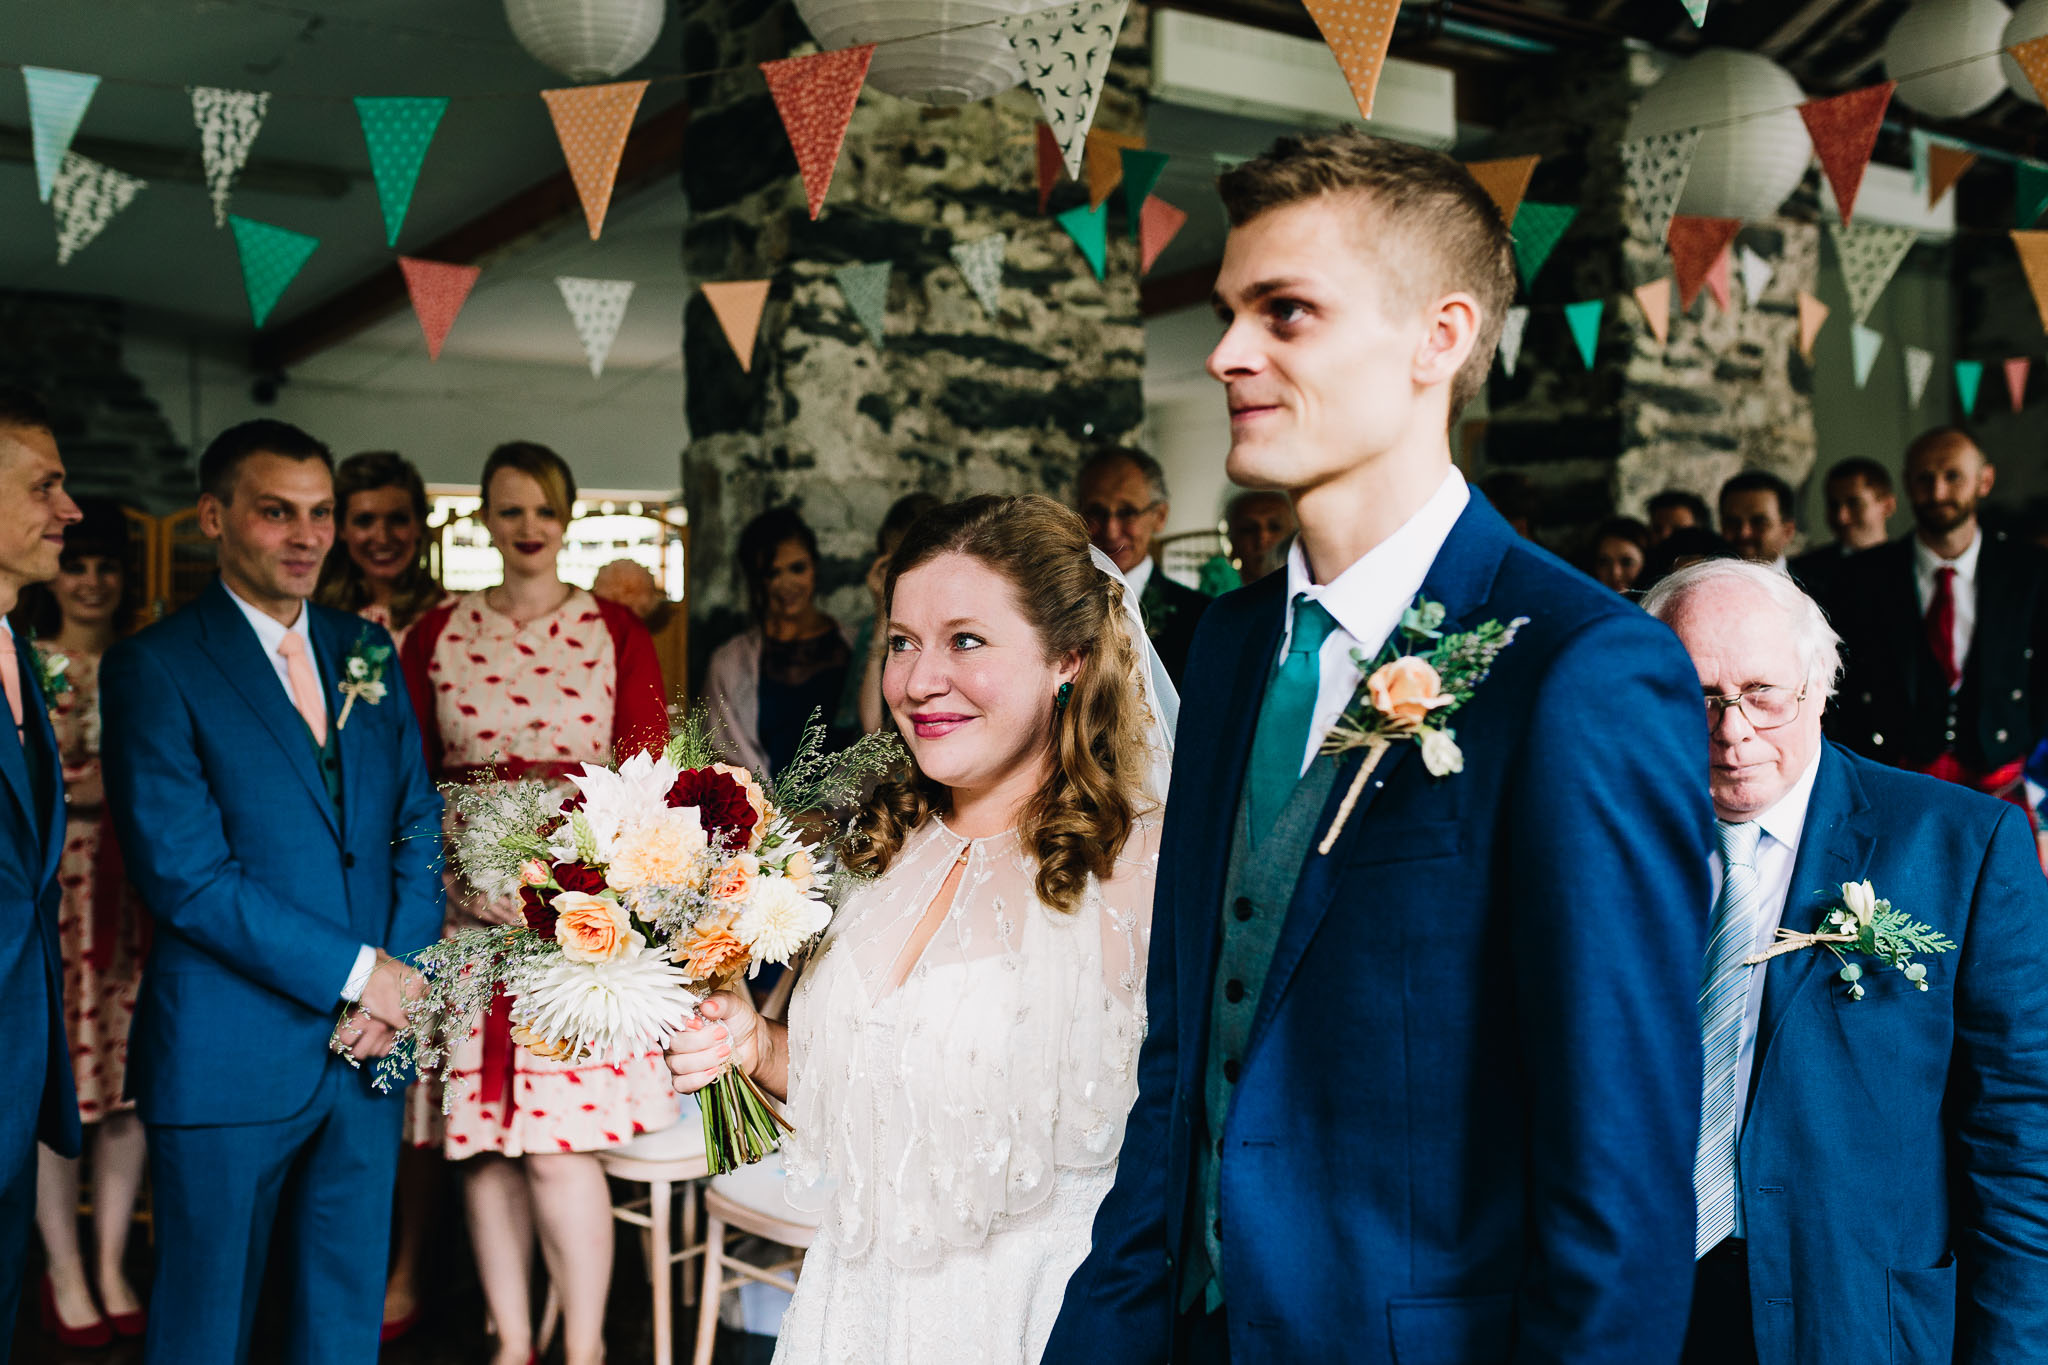 BRIDE AND GROOM GETTING MARRIED IN NORTH WALES BARN WEDDING